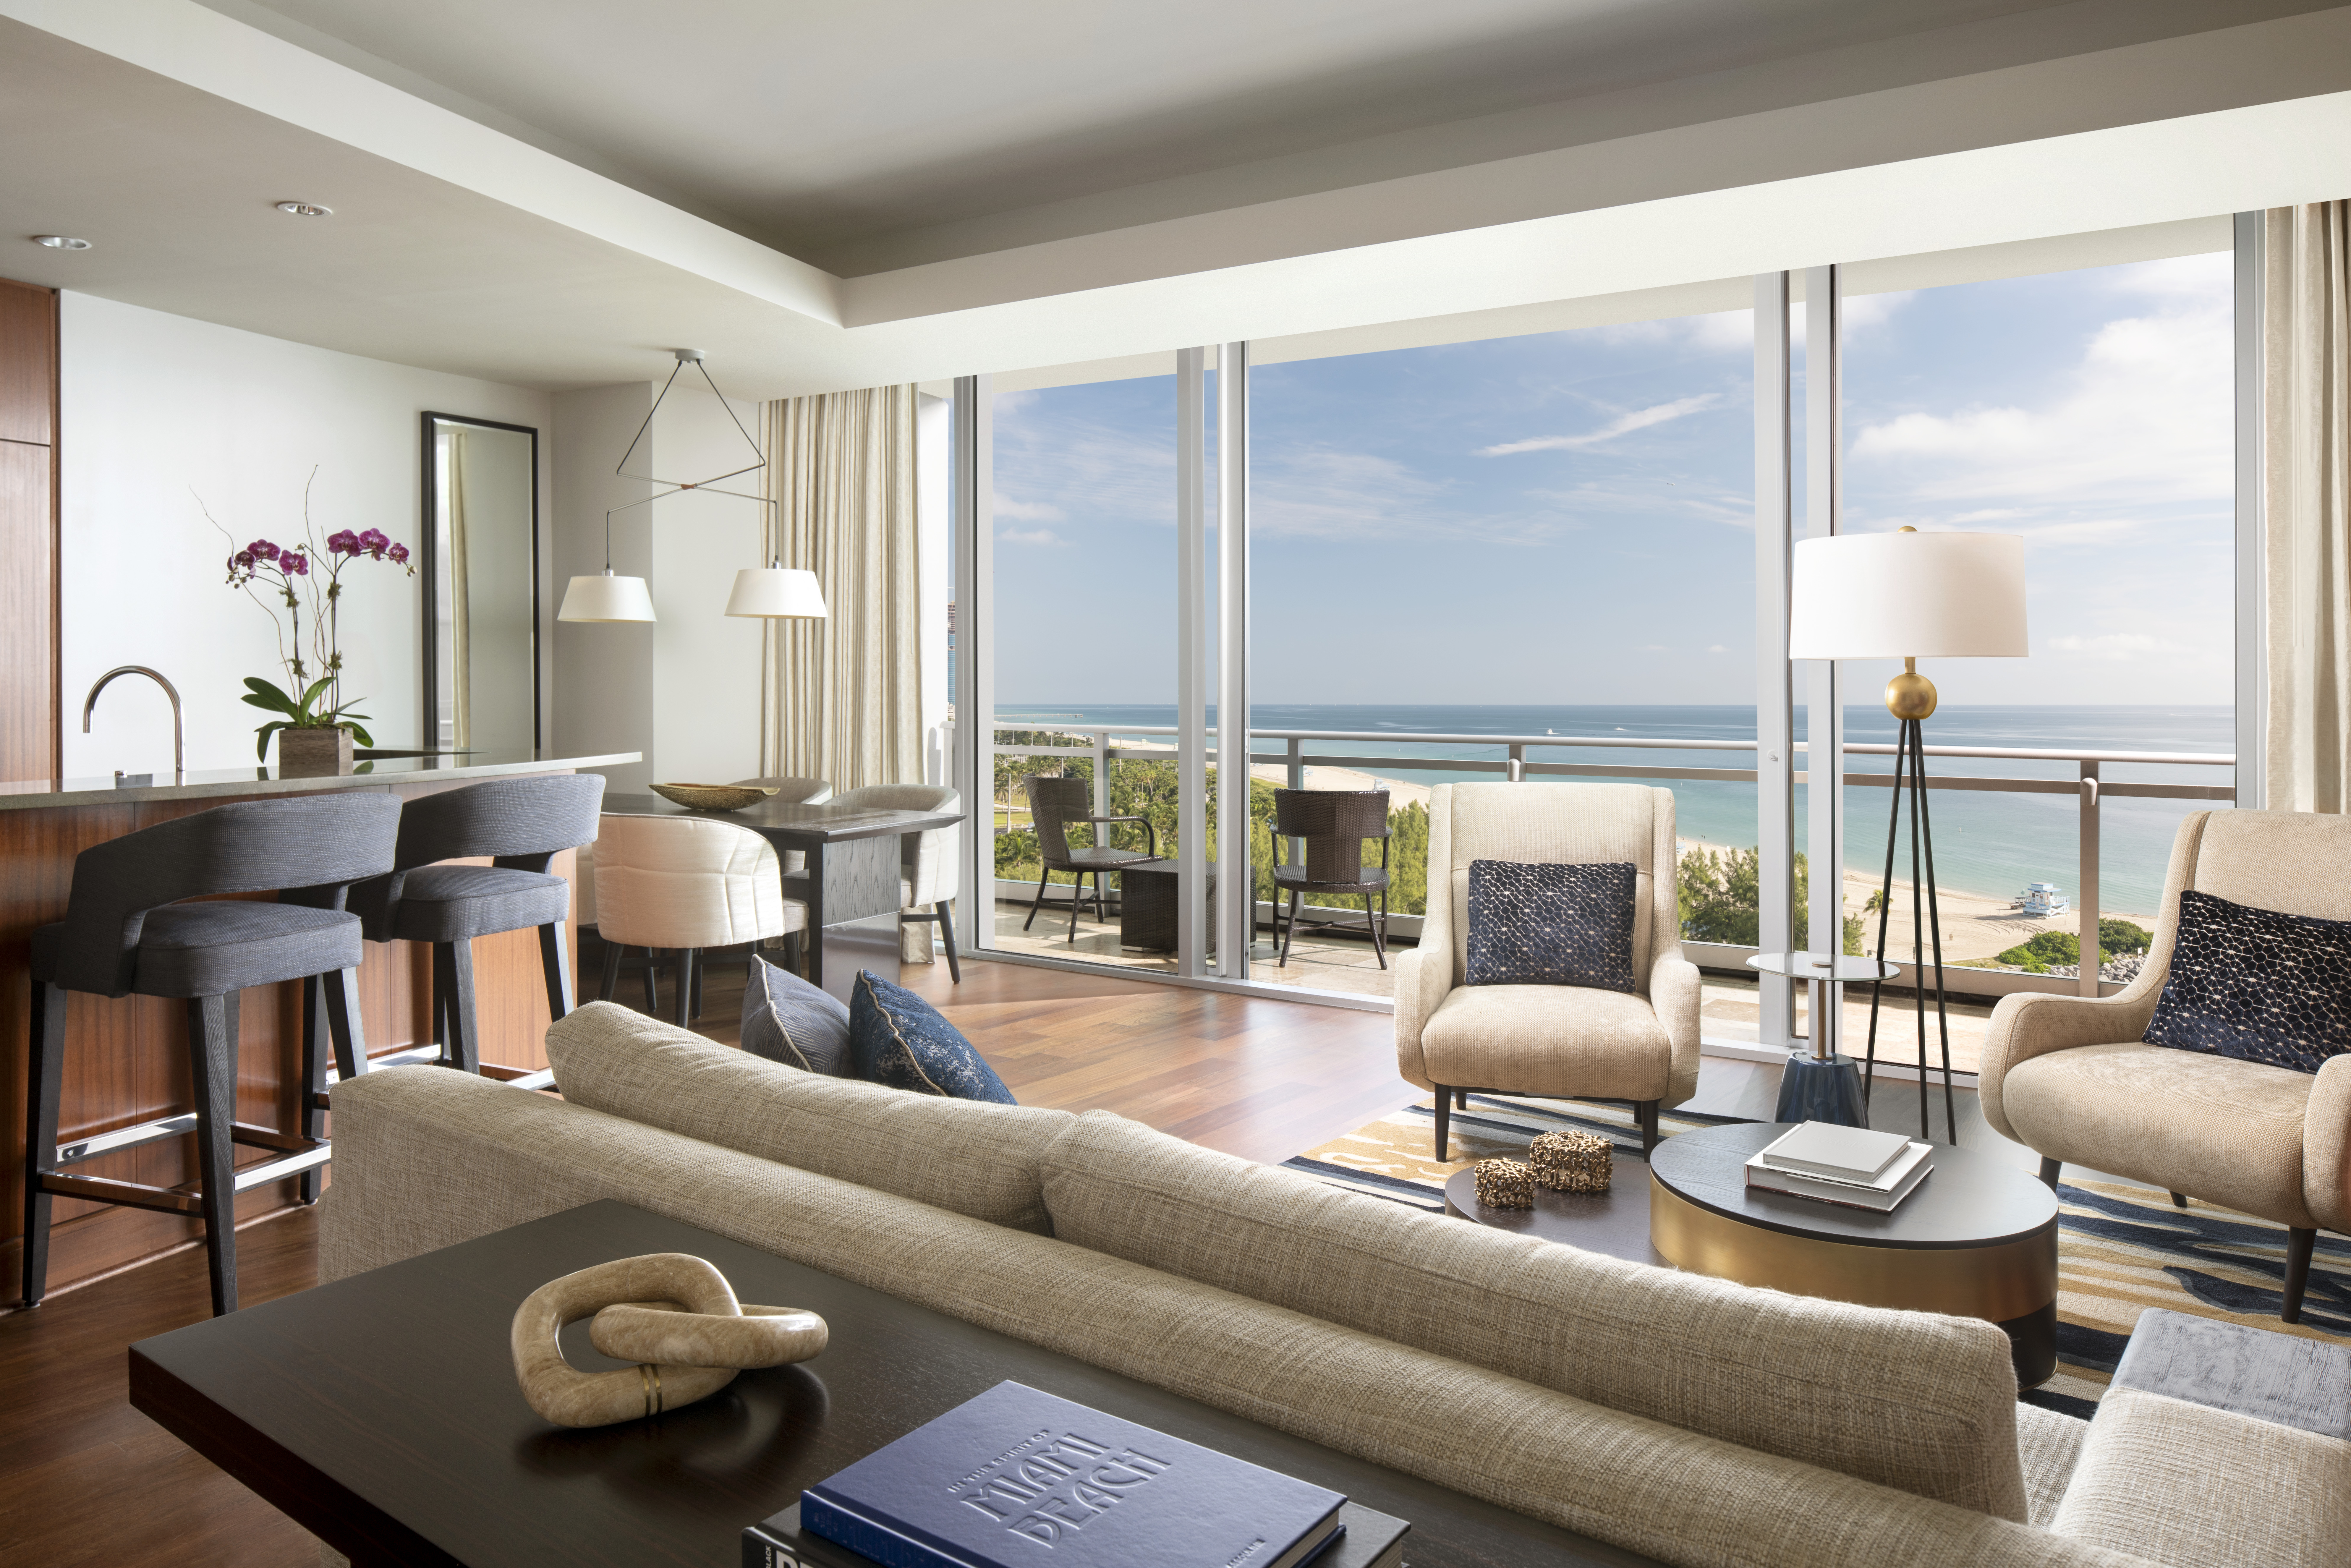 Living room with ocean view,�The Ritz-Carlton Residences, Bal Harbour